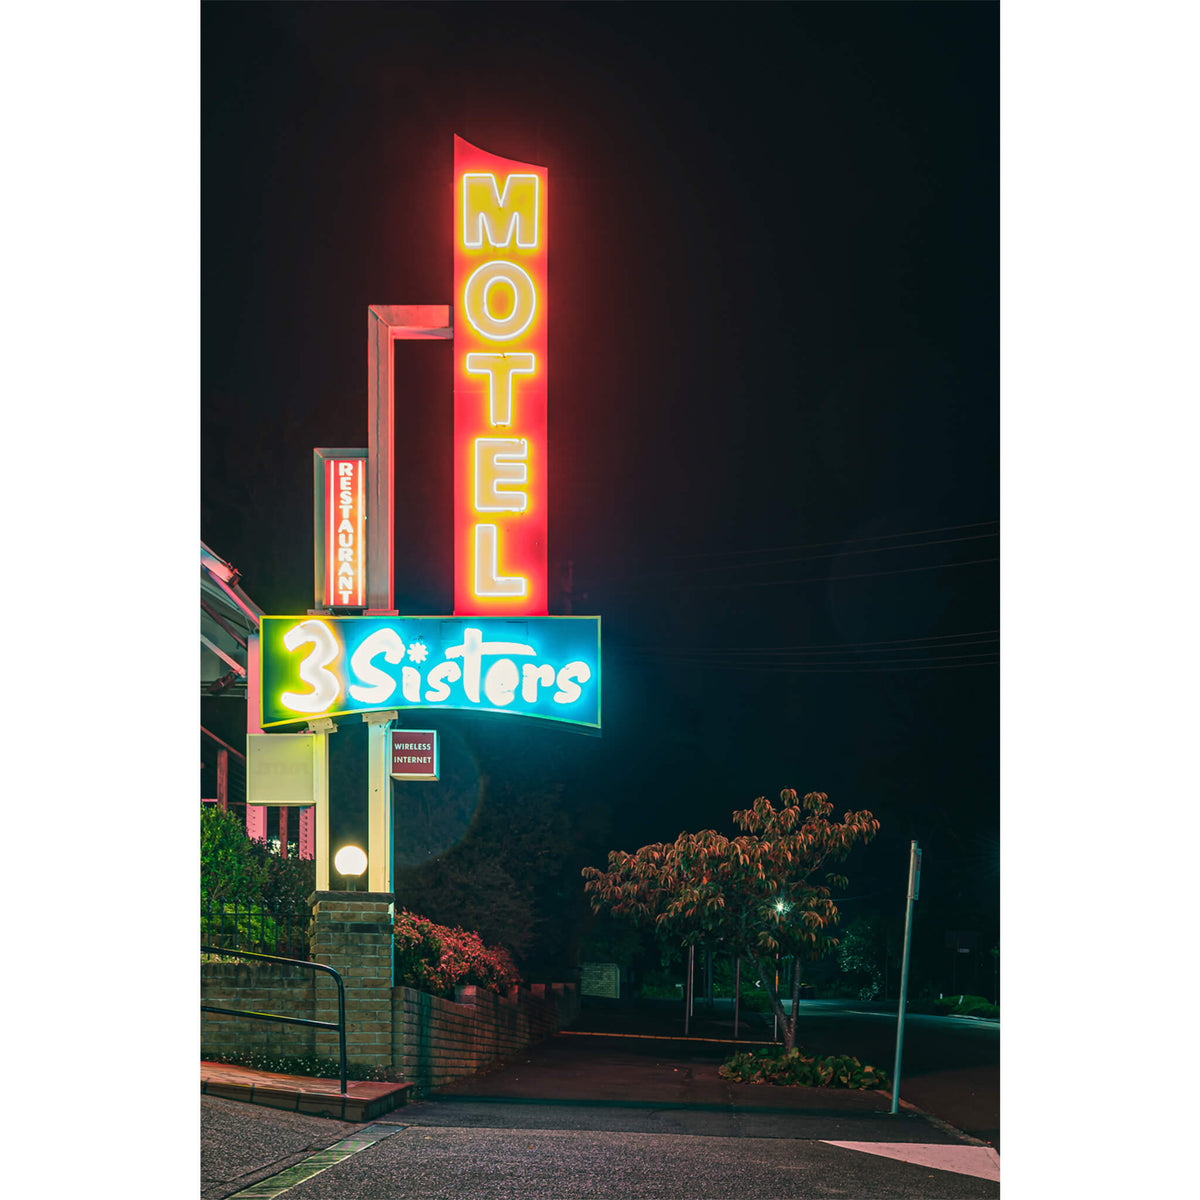 3 Sisters Motel Sign | Hotel Motel 101 Fine Art Print - Lost Collective Shop